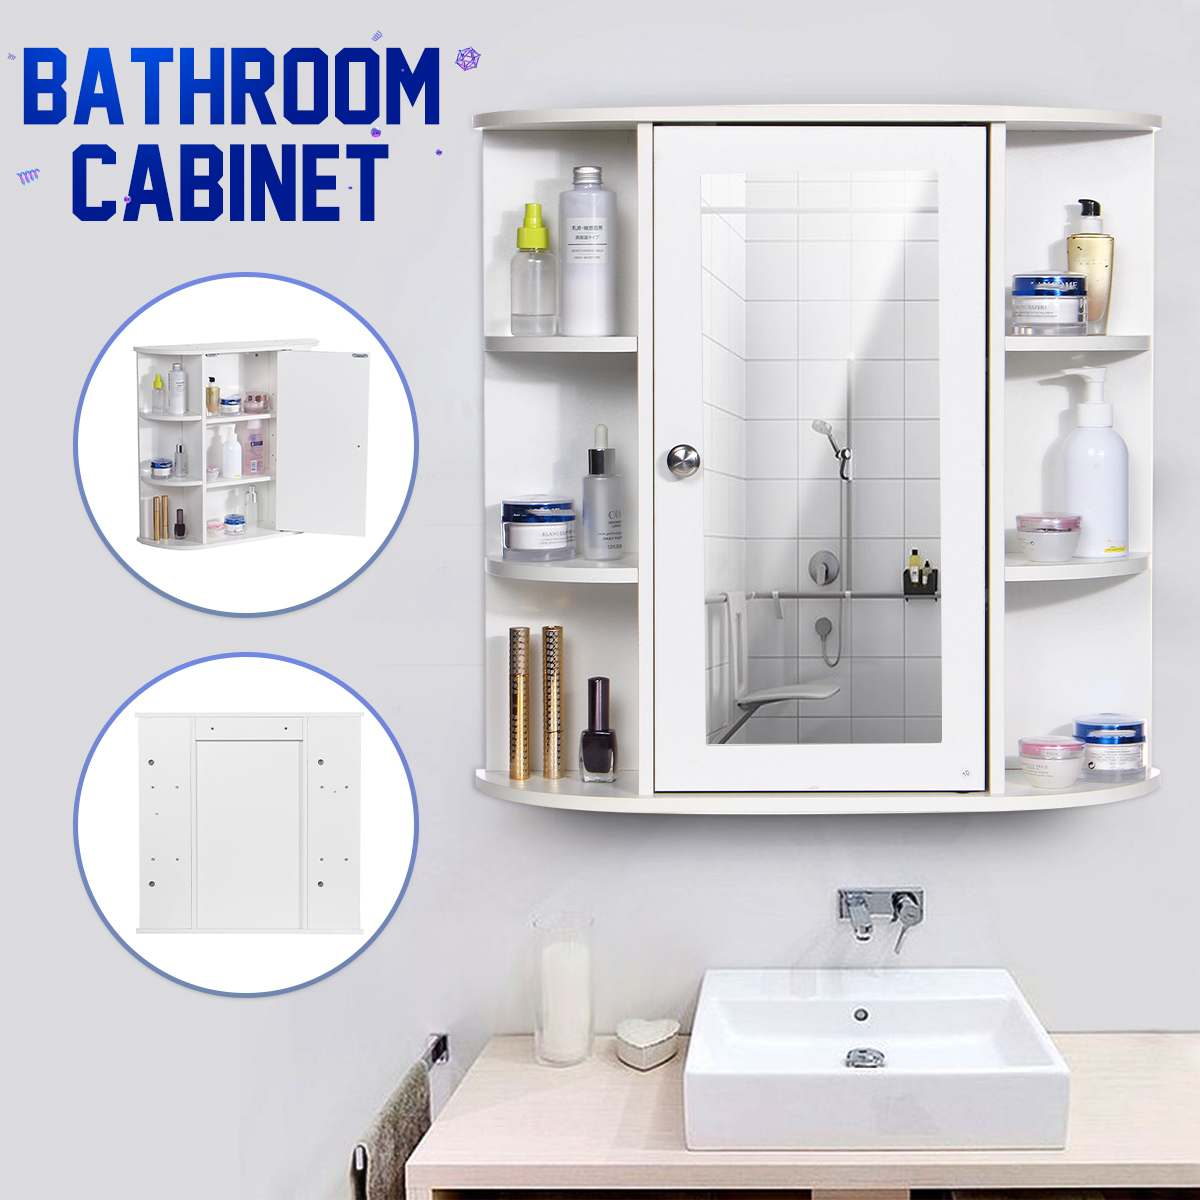 Bathroom Cabinet With Mirror 58 X 60 X 16 5cm Wall Mounted Bathroom Toilet Furniture Cabinet Cupboard Shelf Cosmetic Storager Aliexpress